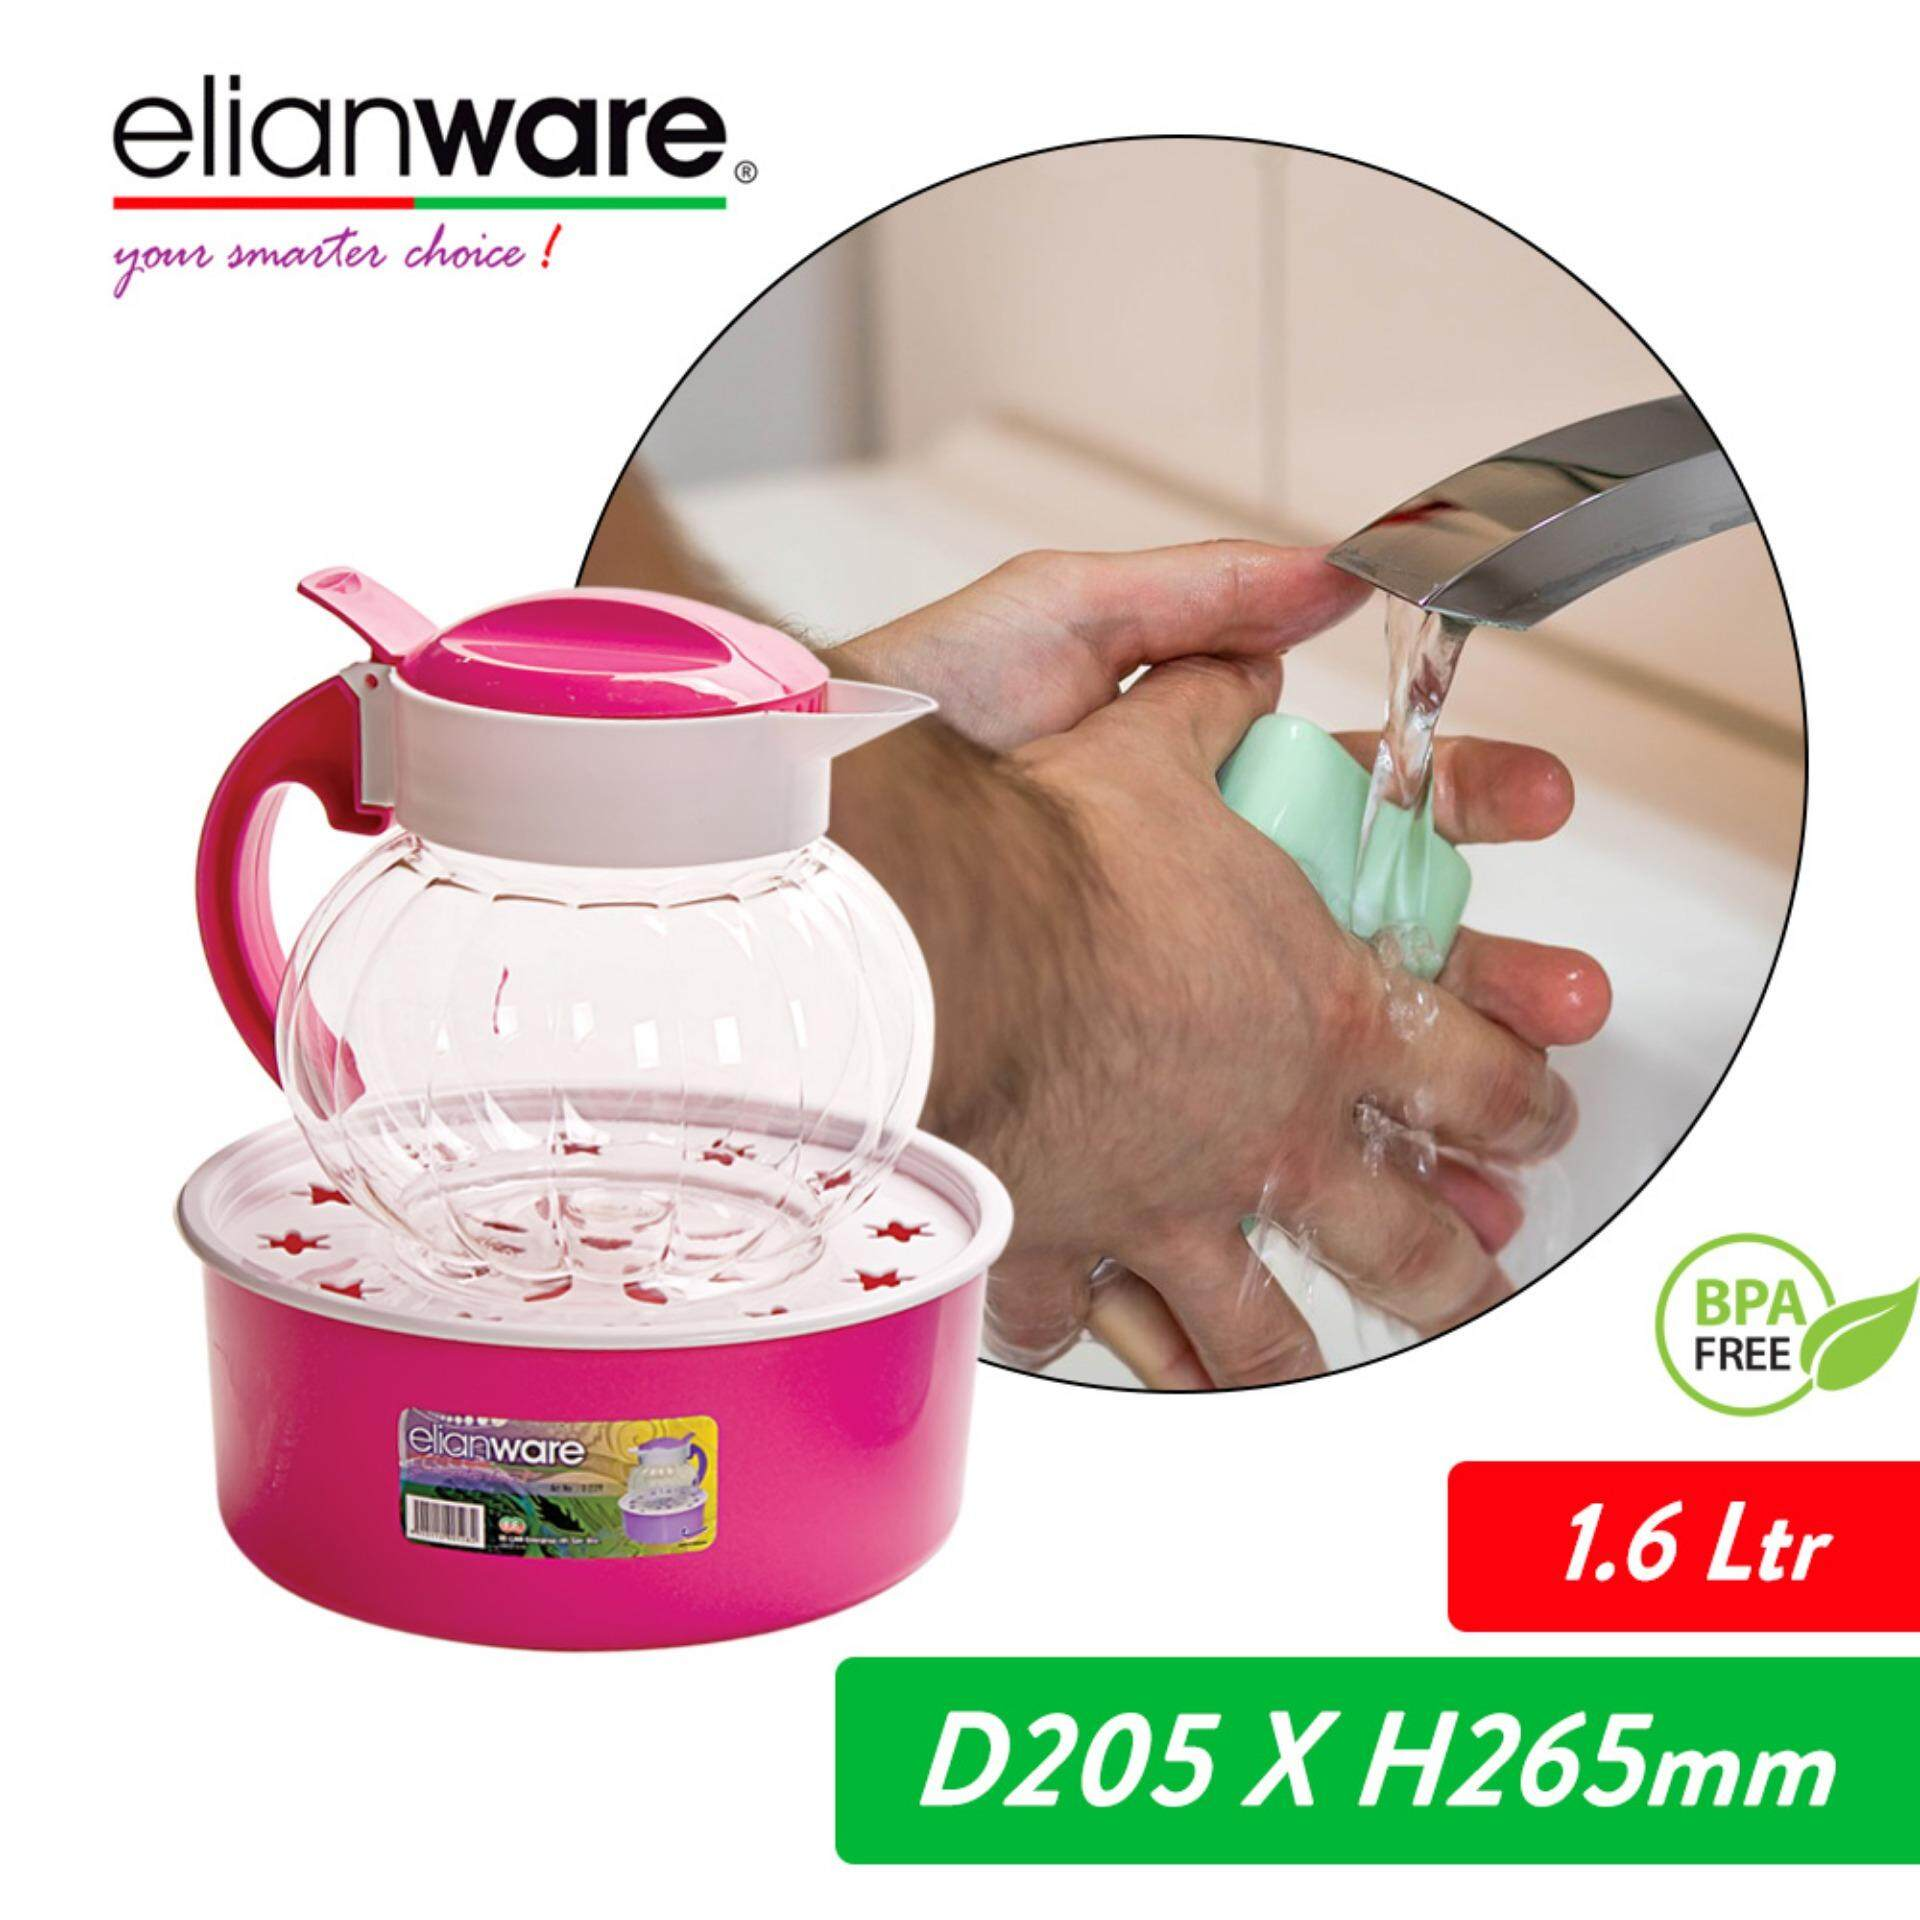 Elianware Hand Washing Pot with Tray / Kole Bekas Basuh Tangan (1.6L)